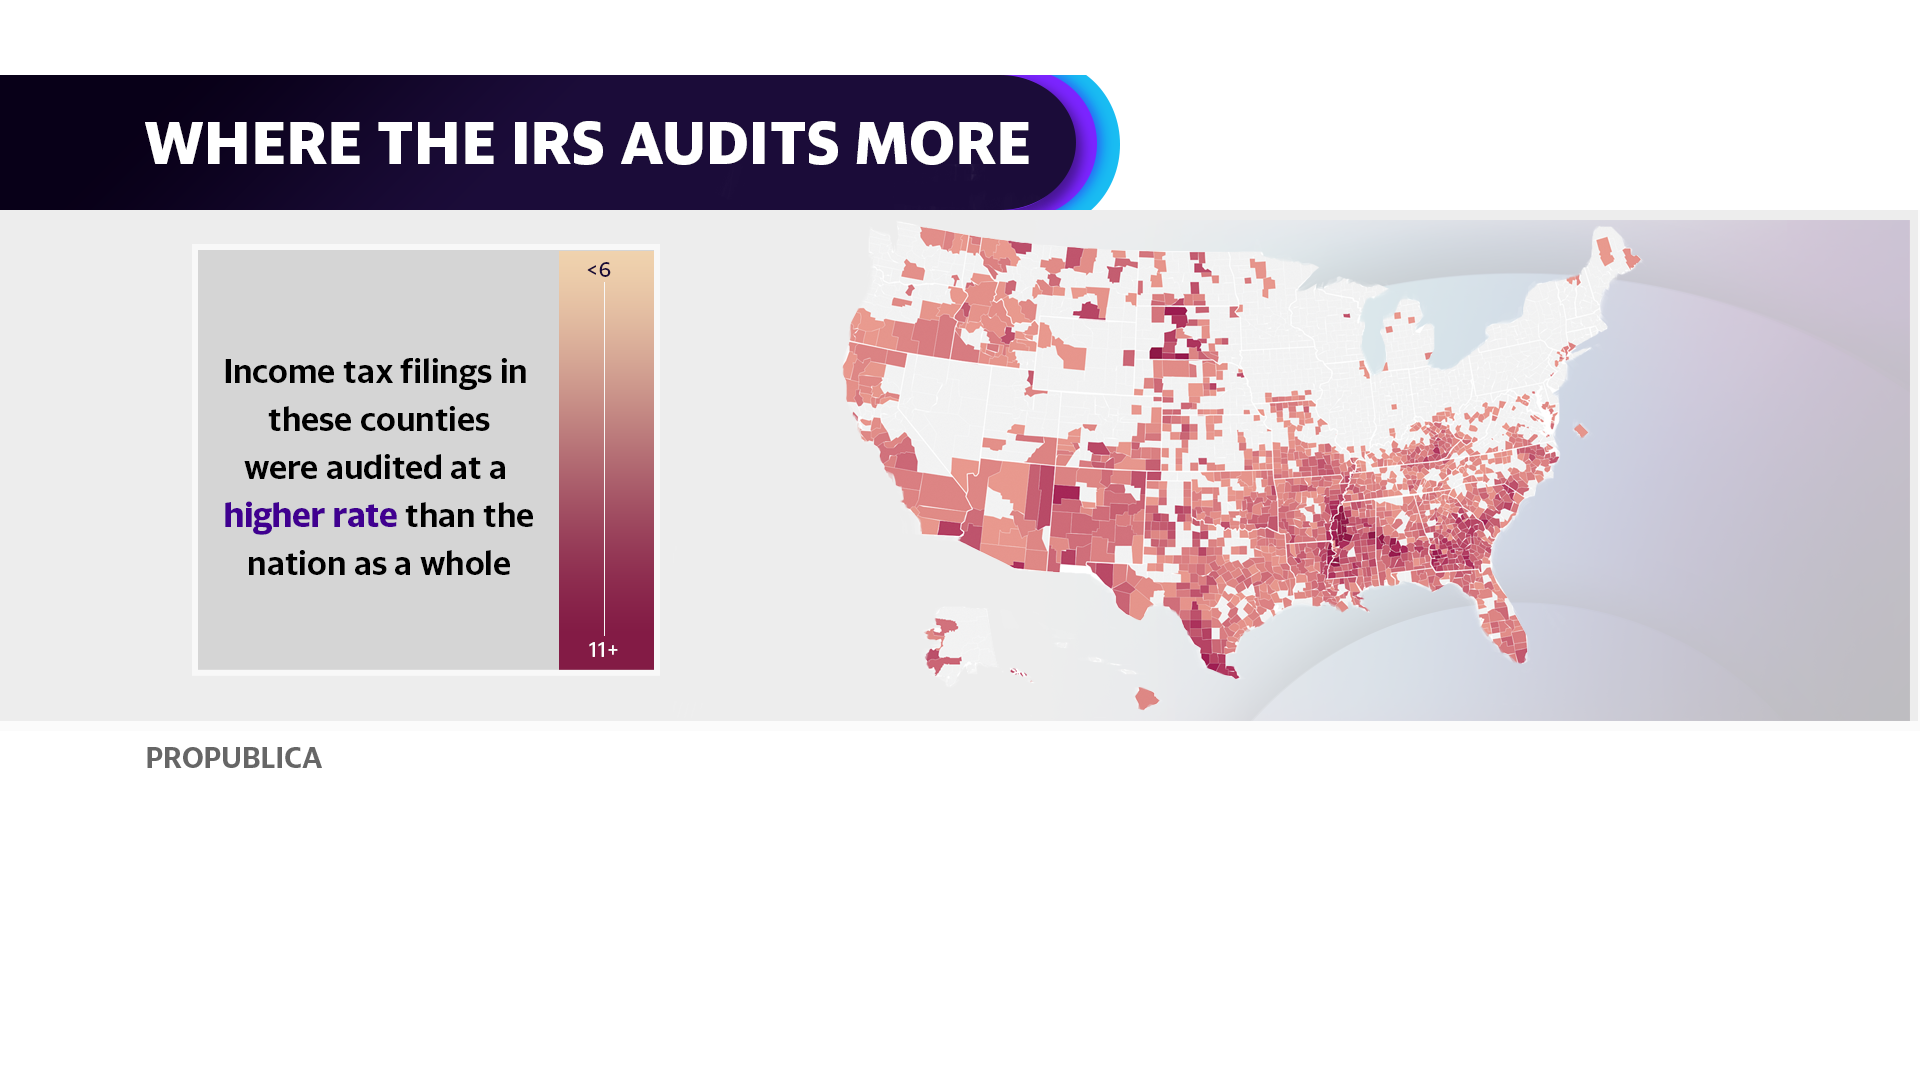 Income tax filings in these counties were audited at a higher rate than the nation as a whole.